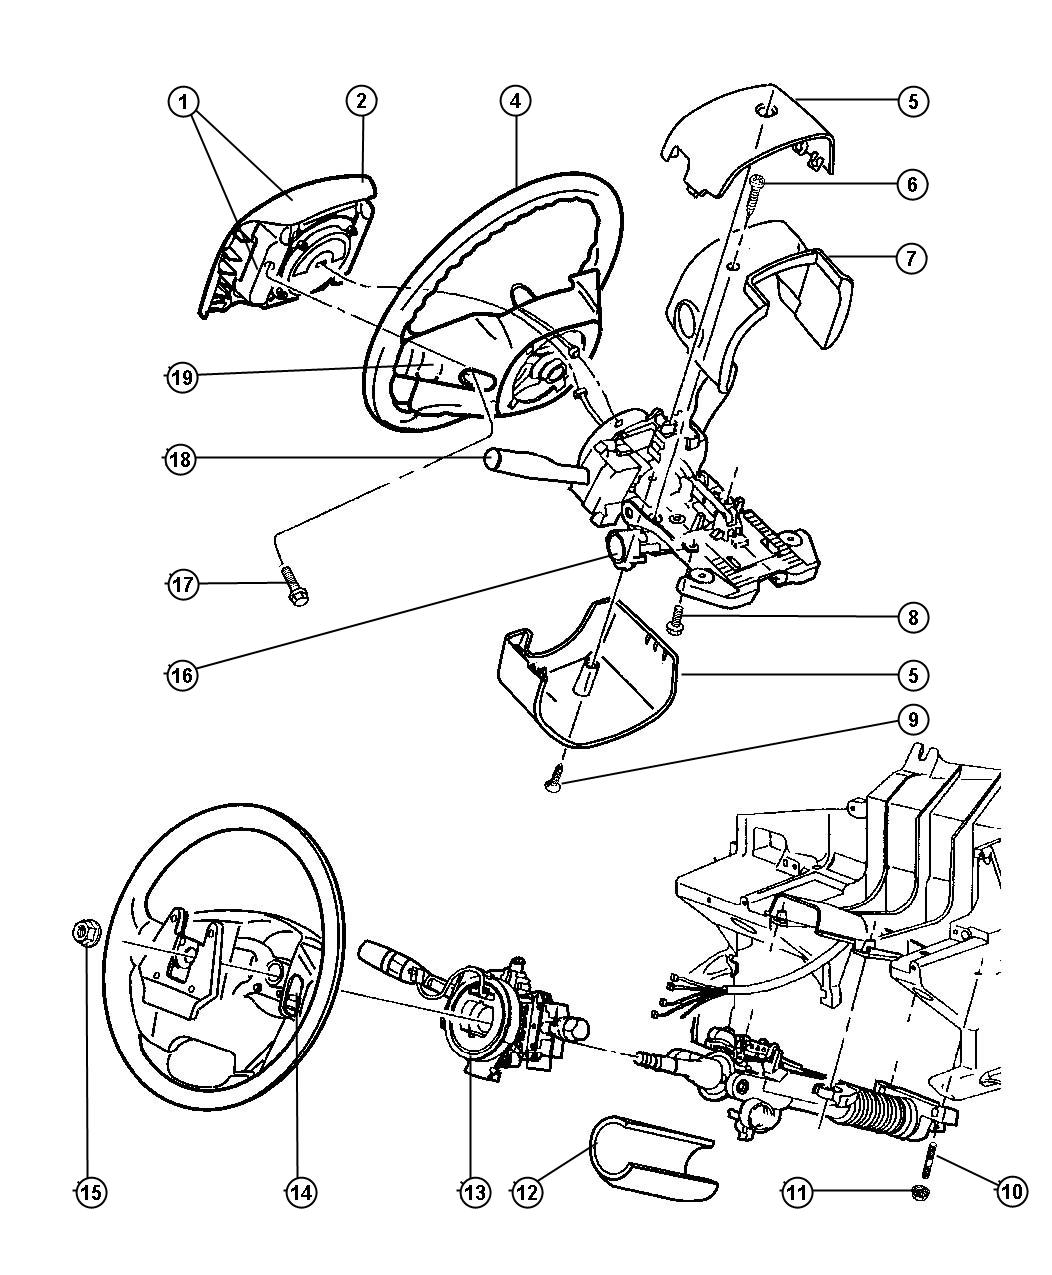 2000 Jeep Grand Cherokee Steering Colum Wiring Diagram 2001 Hot Engine For 1999 1998